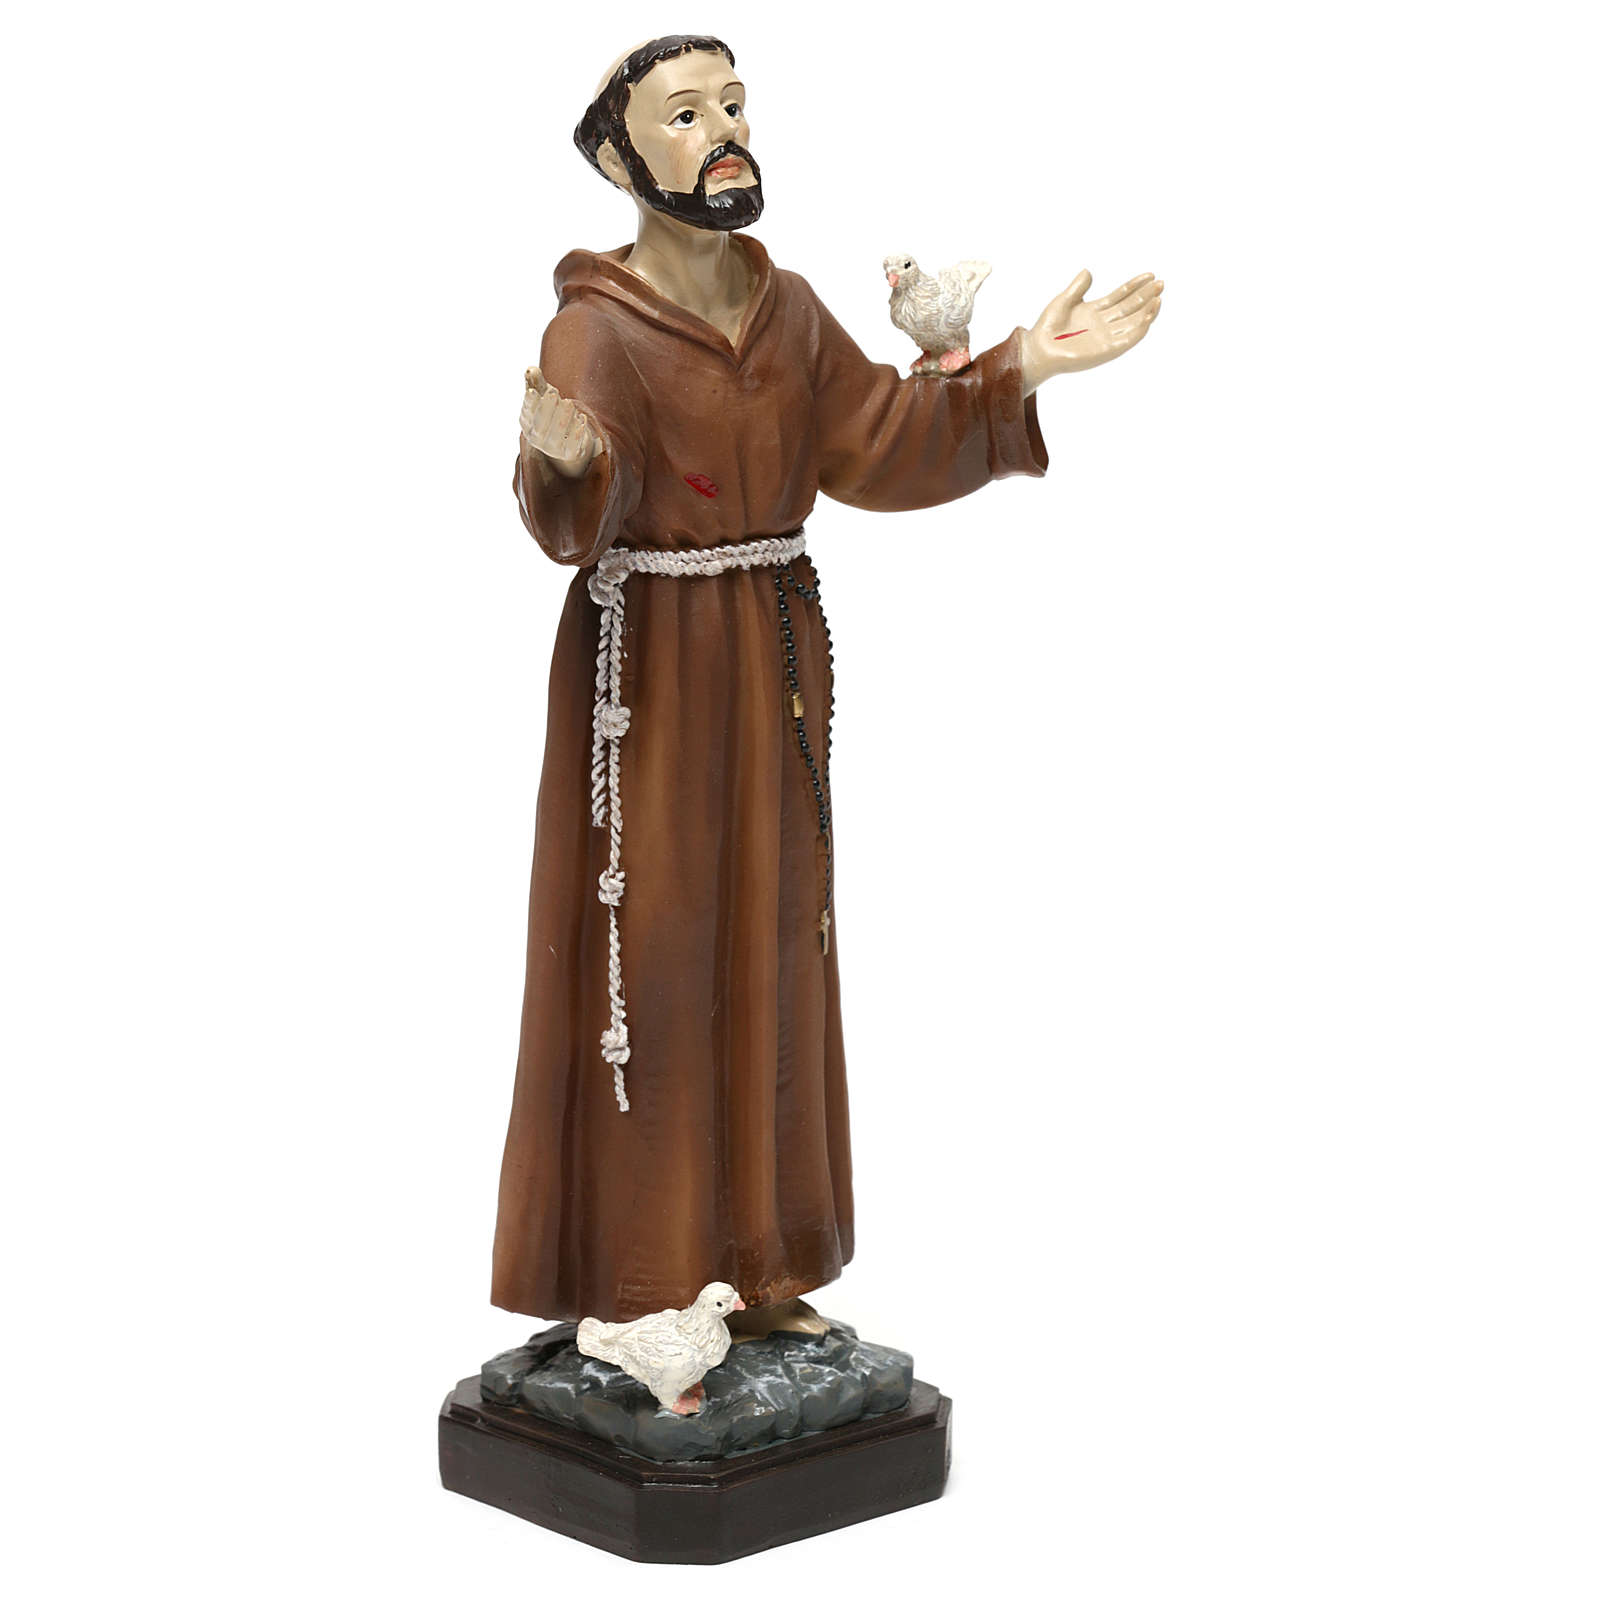 St. Francis statue in resin 20 cm 4